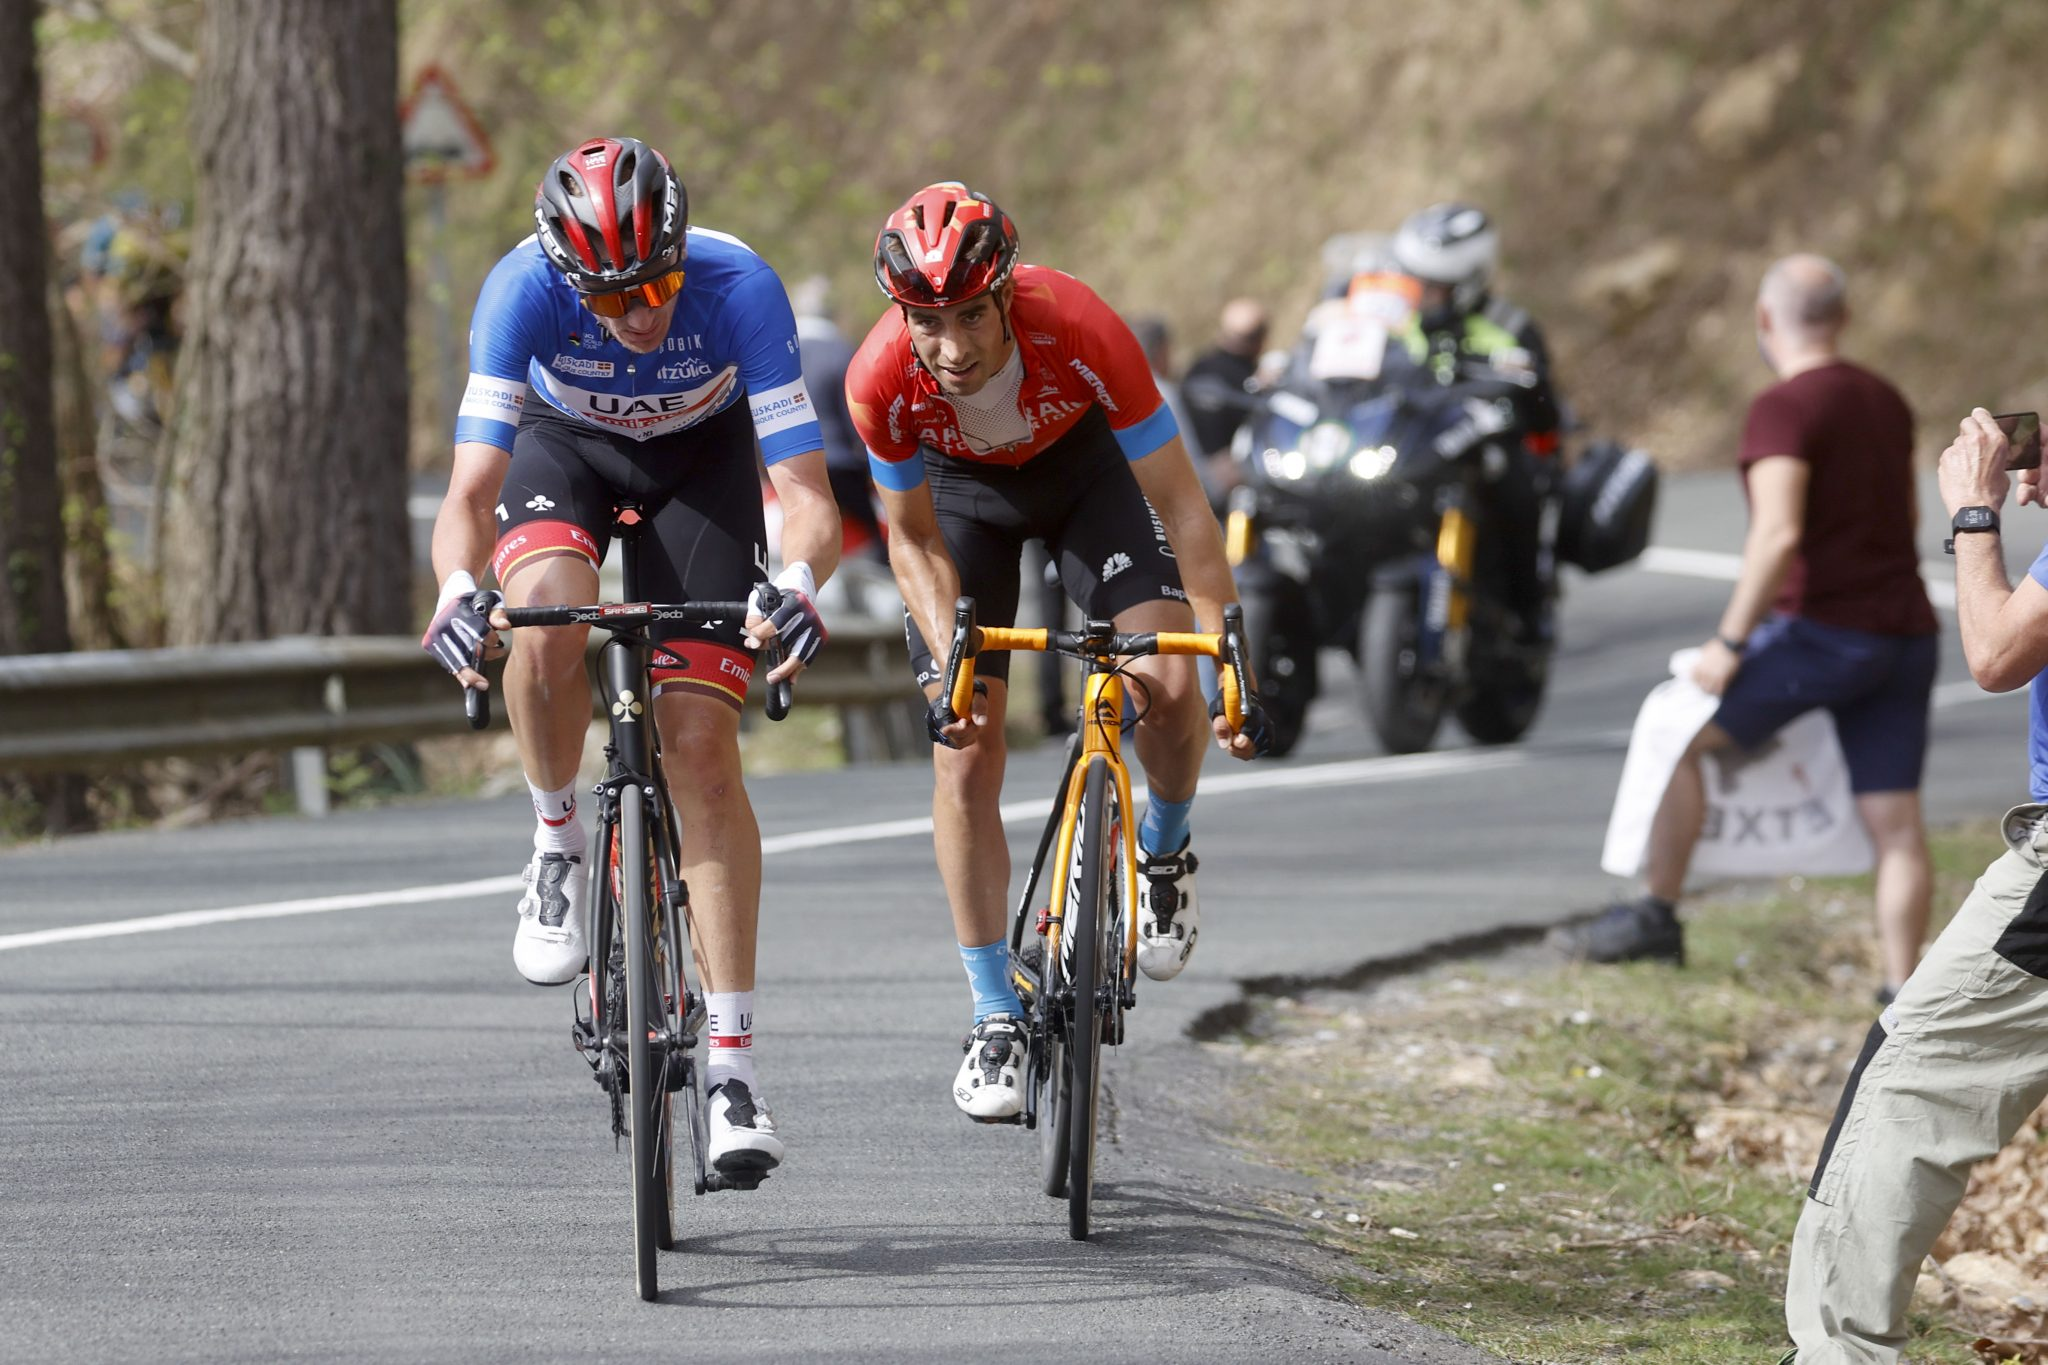 2021 ITZULIA BASQUE COUNTRY STAGE 4 RESULTS — MCNULTY SHINES